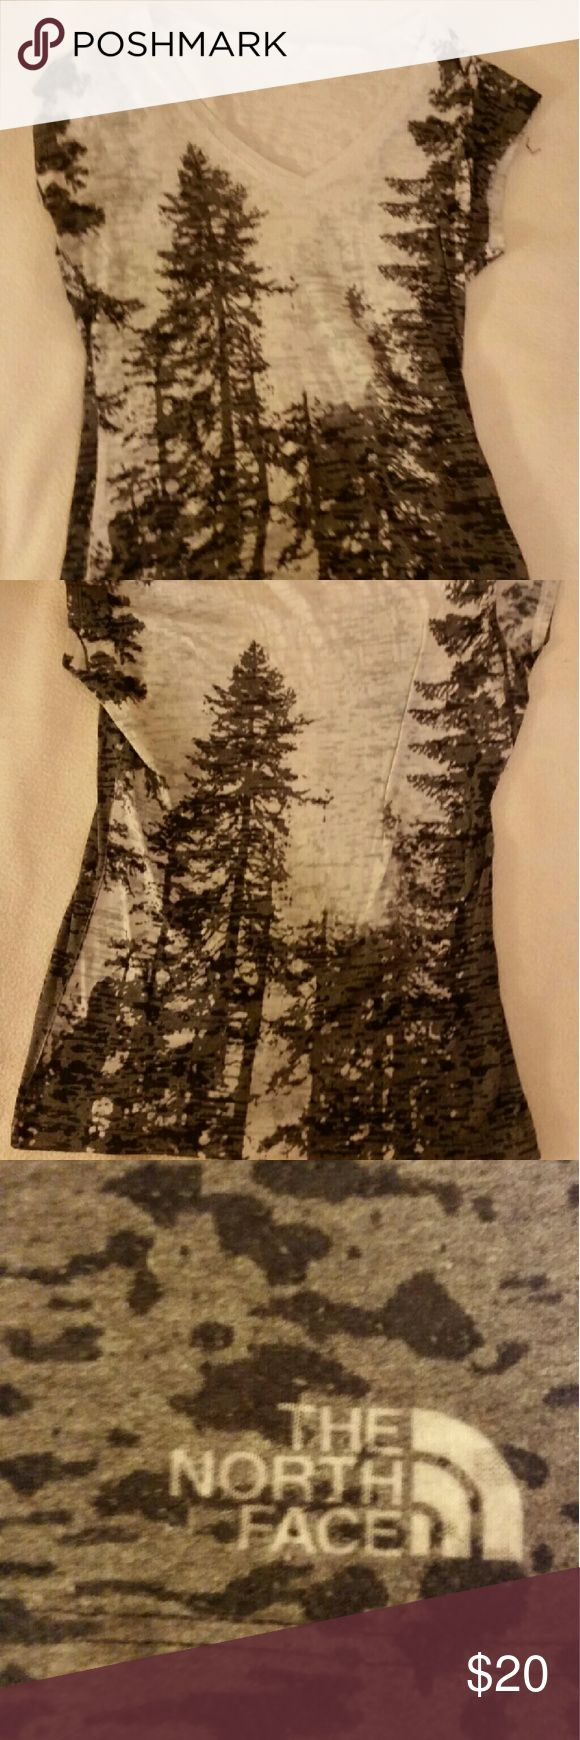 Tree burnout tee Beautiful North Face tree pattern burnout tee. Lightweight, great for layering. Excellent used condition. North Face Tops Tees - Short Sleeve